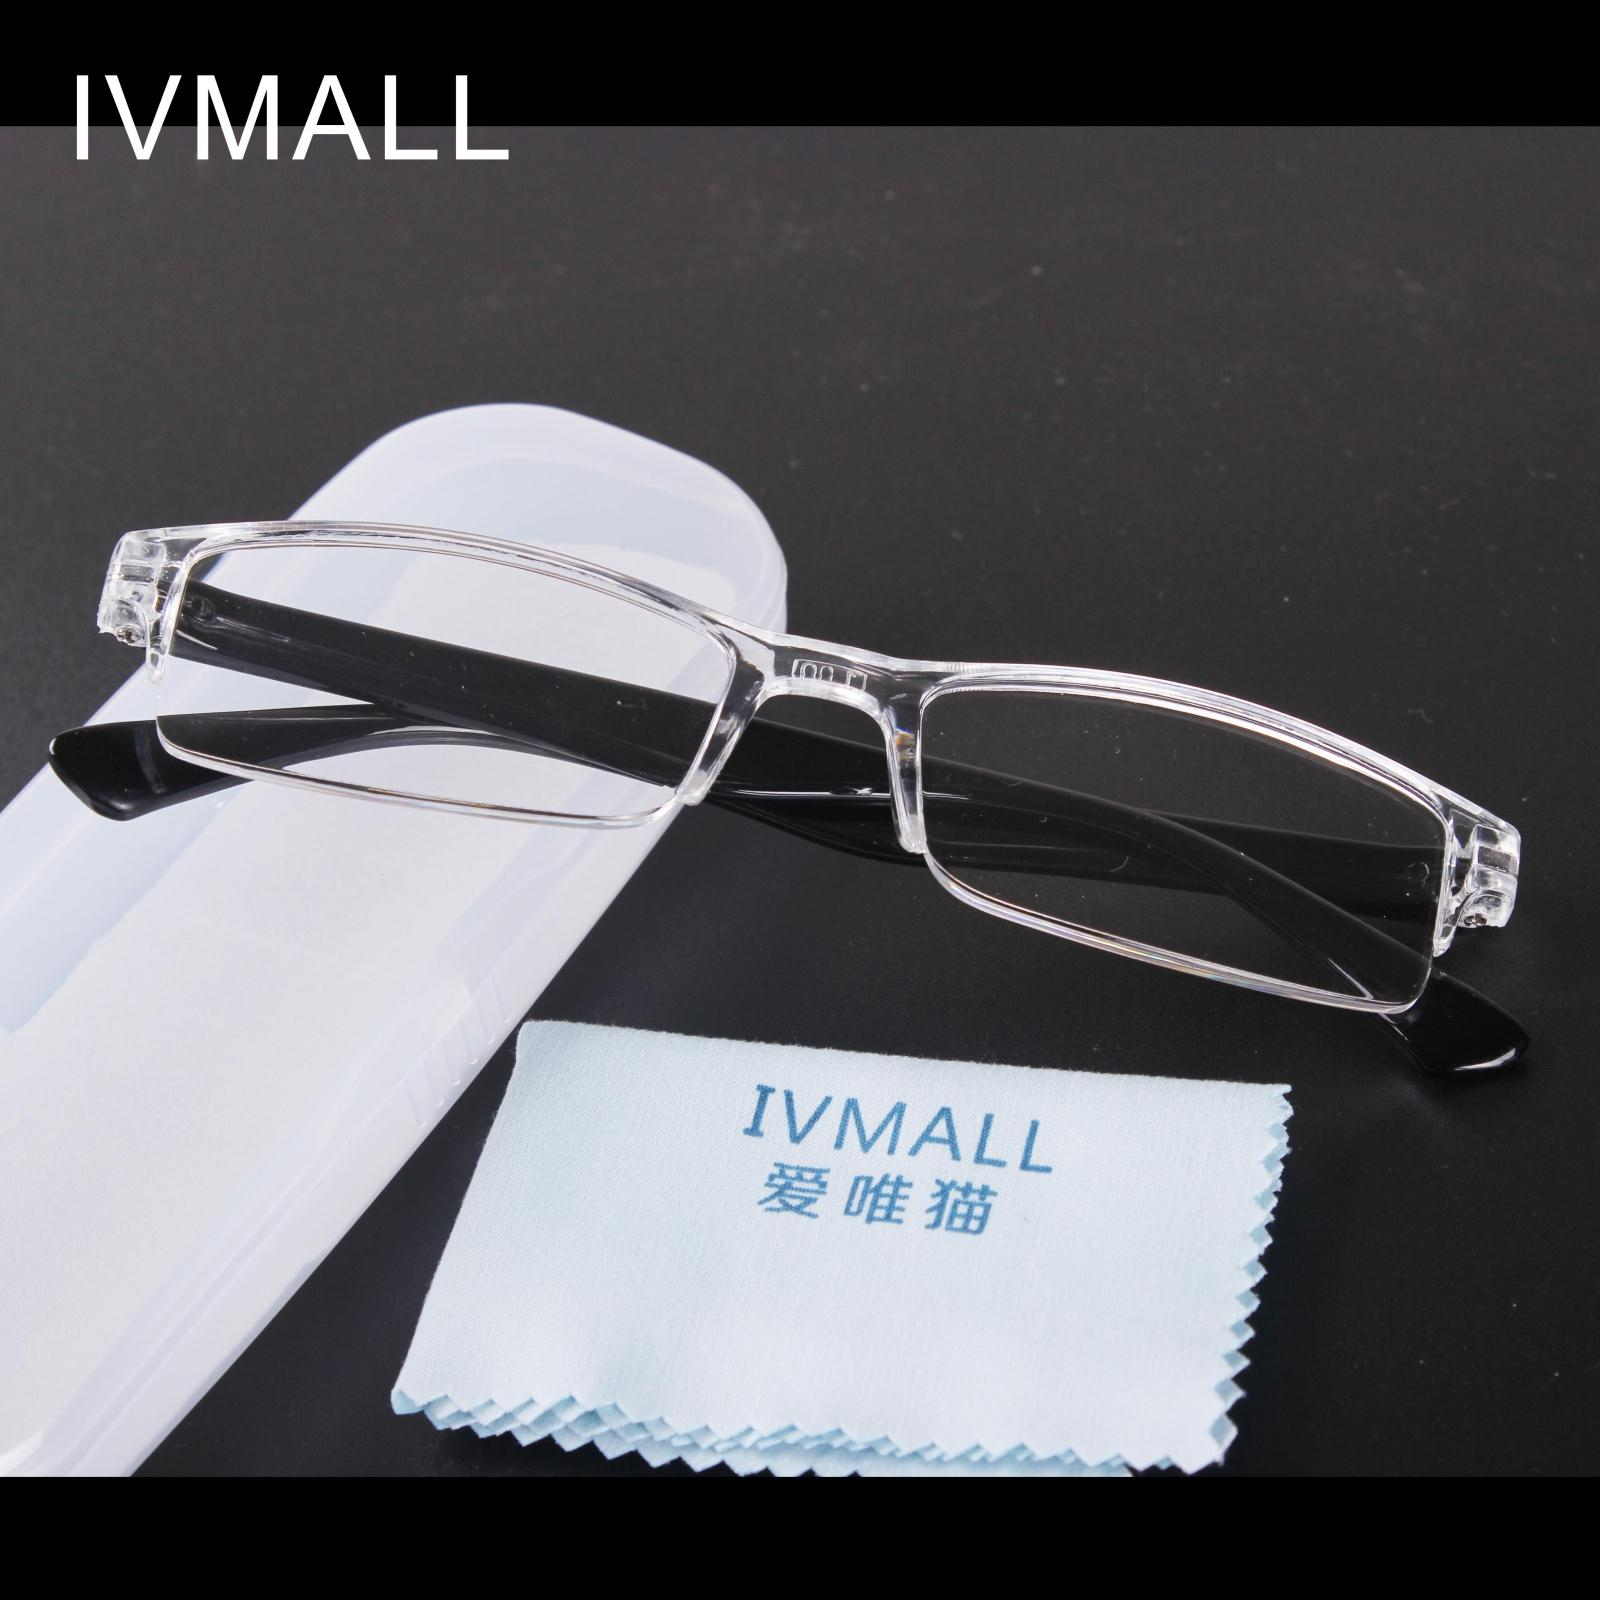 Men and women love only Siamese cats presbyopic glasses one super light lens preventing fatigue old man old lens high-grade quality goods bag mail